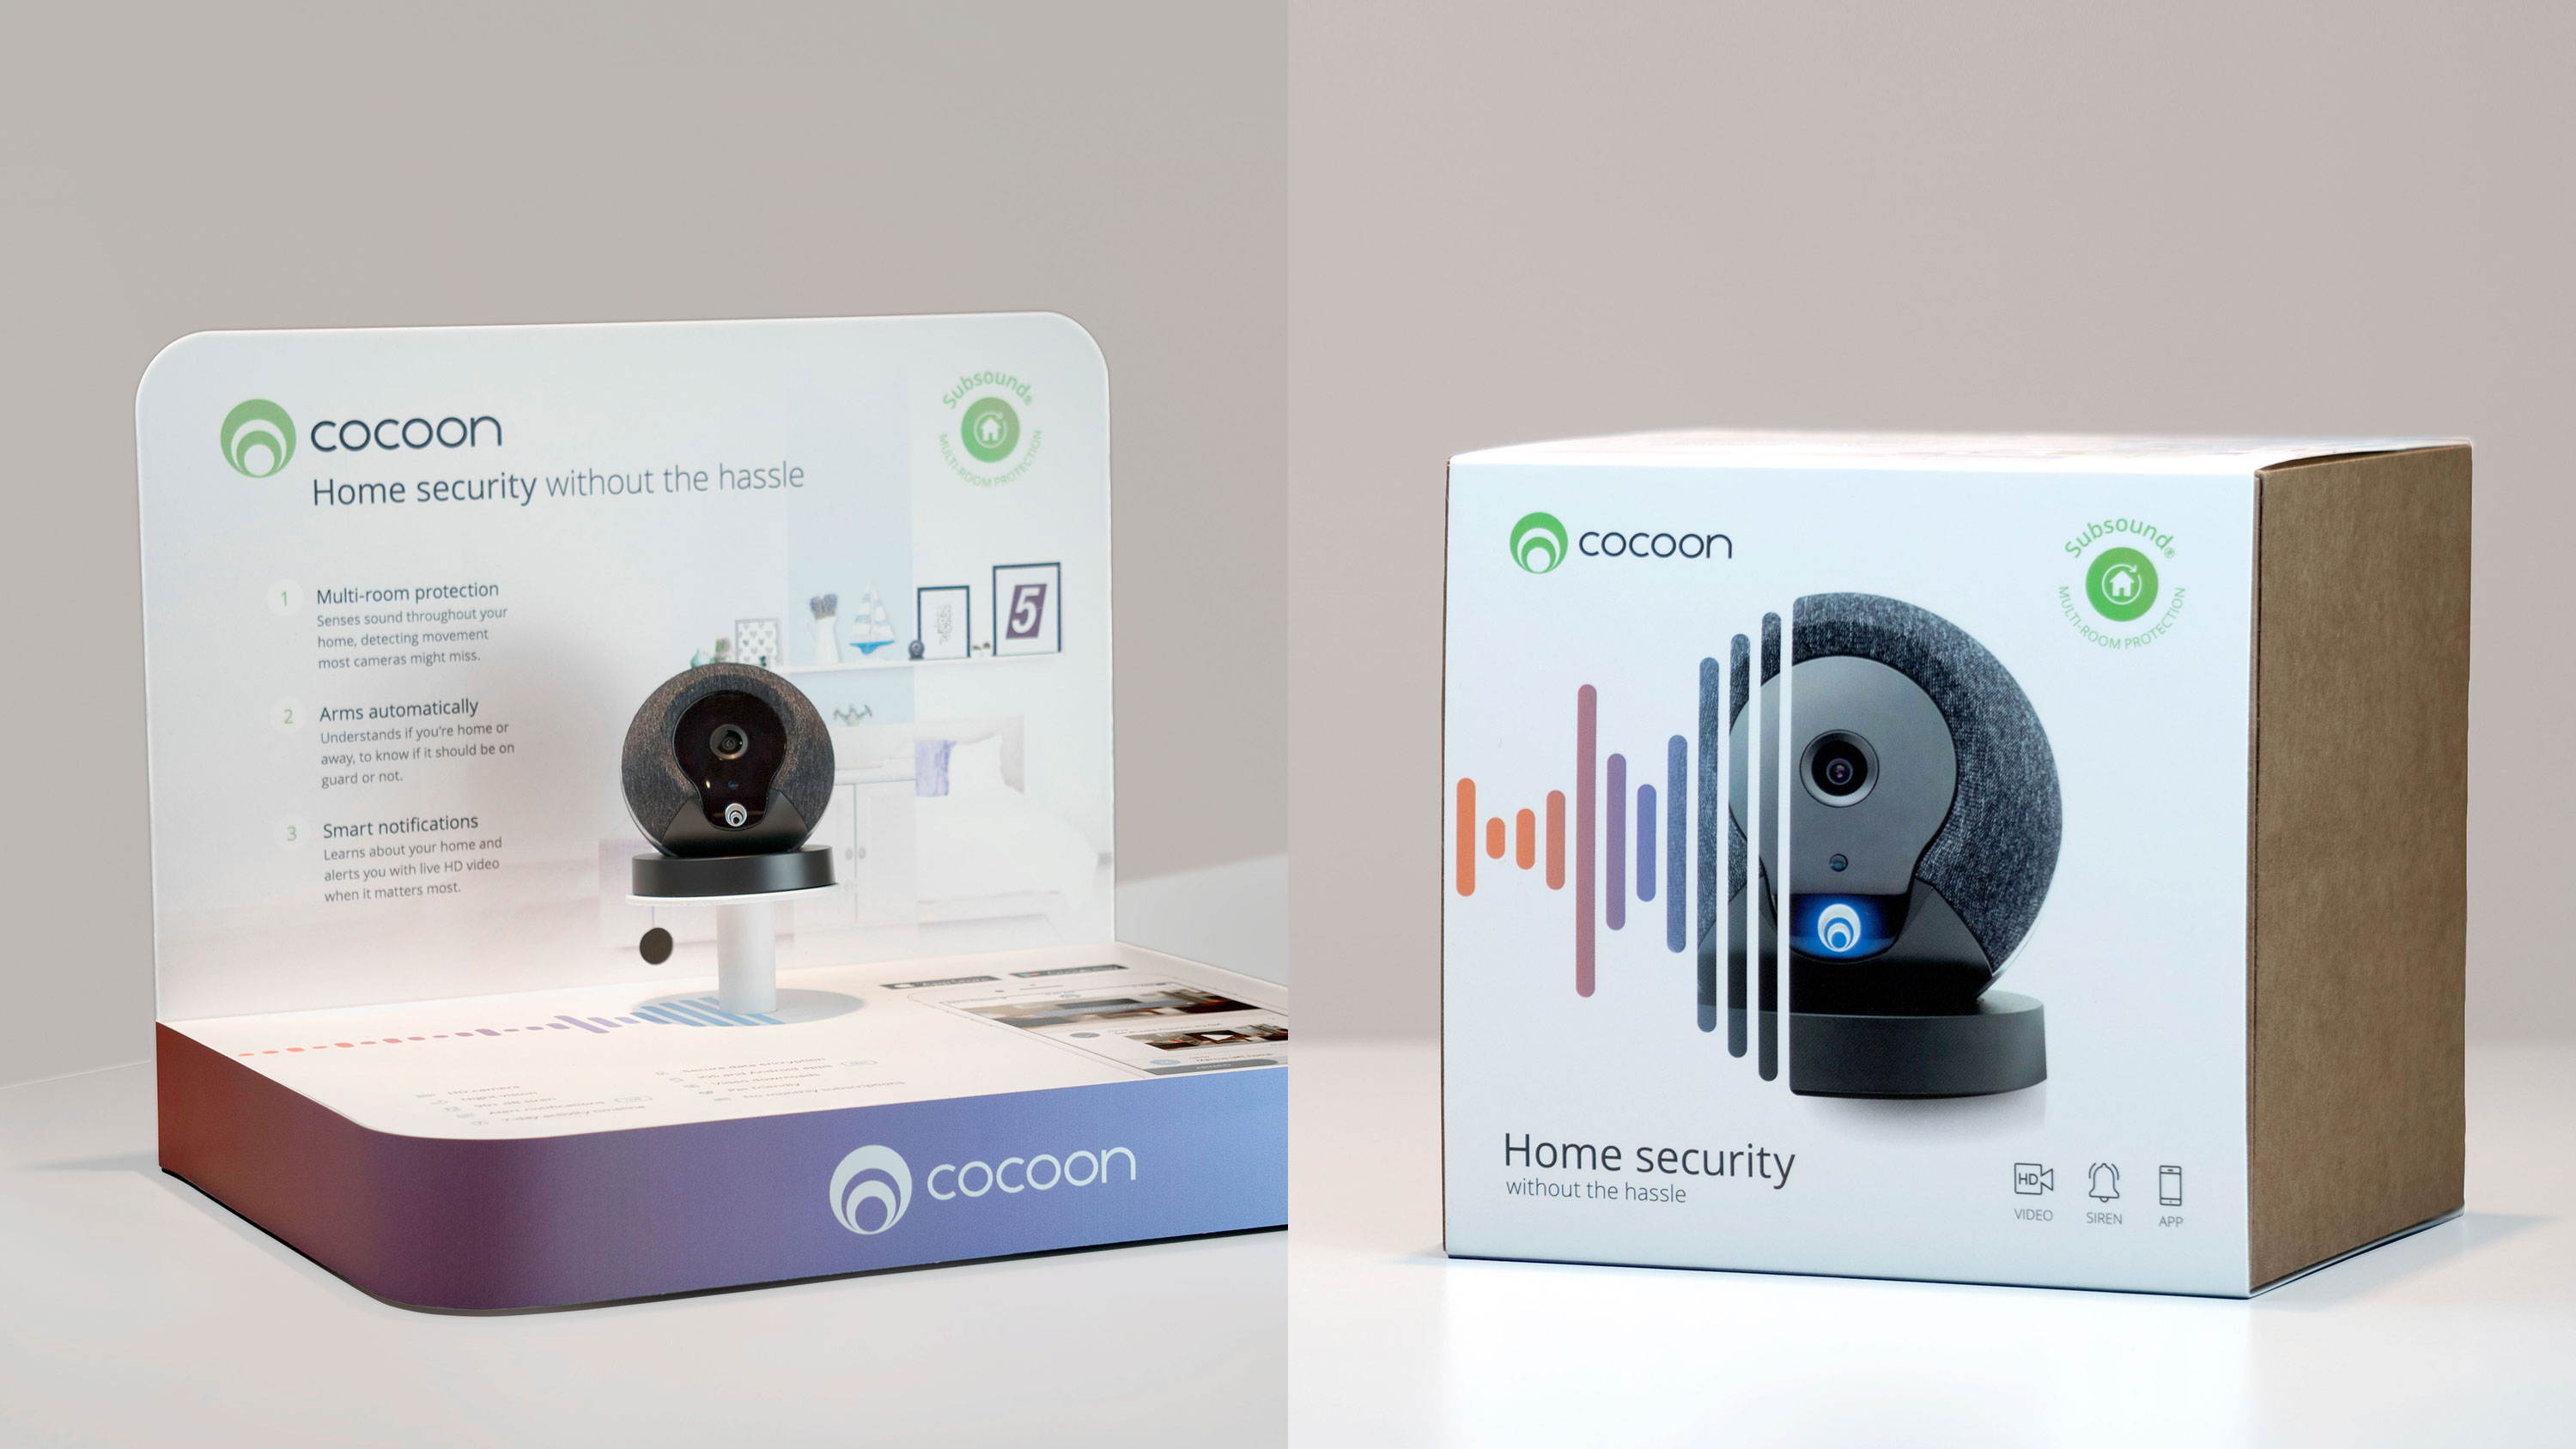 New Cocoon packaging next to POS display